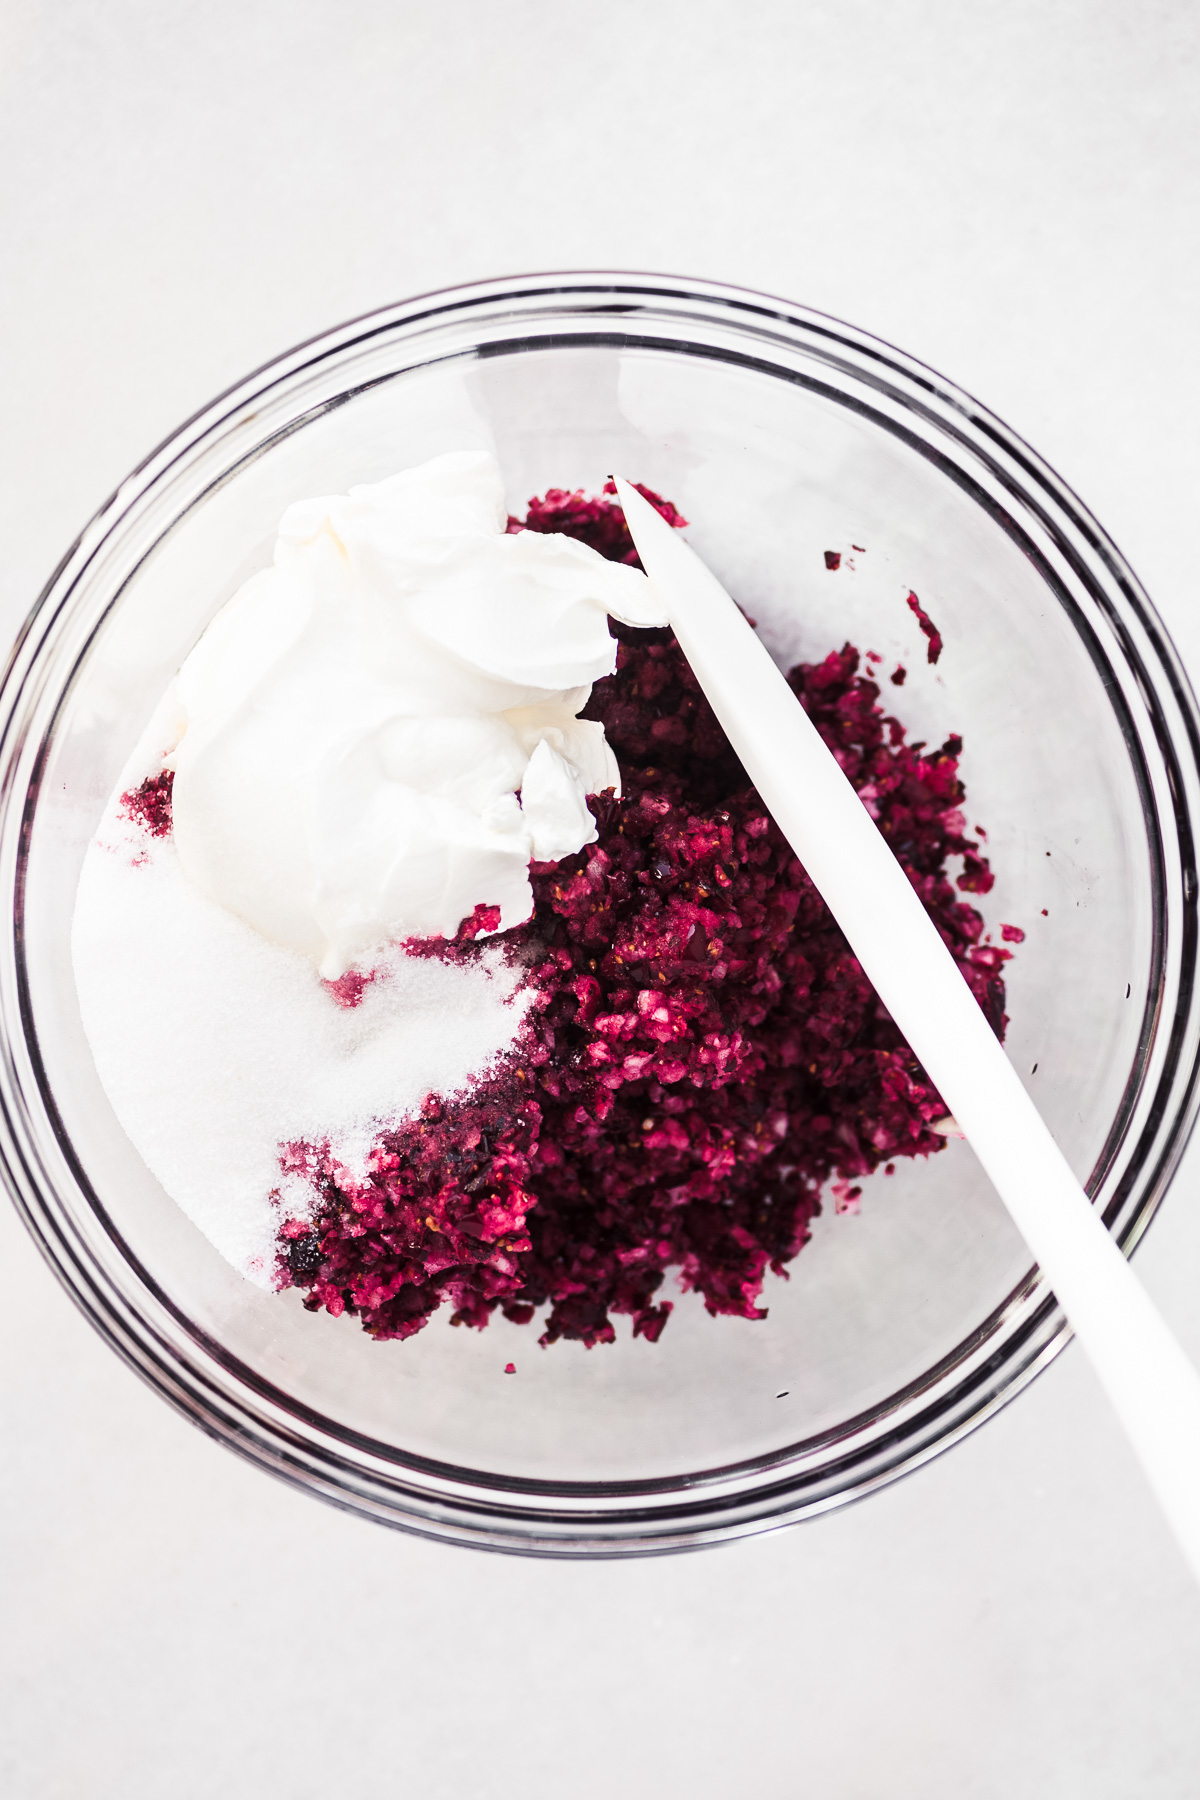 Mixing up cranberry relish in a glass bowl